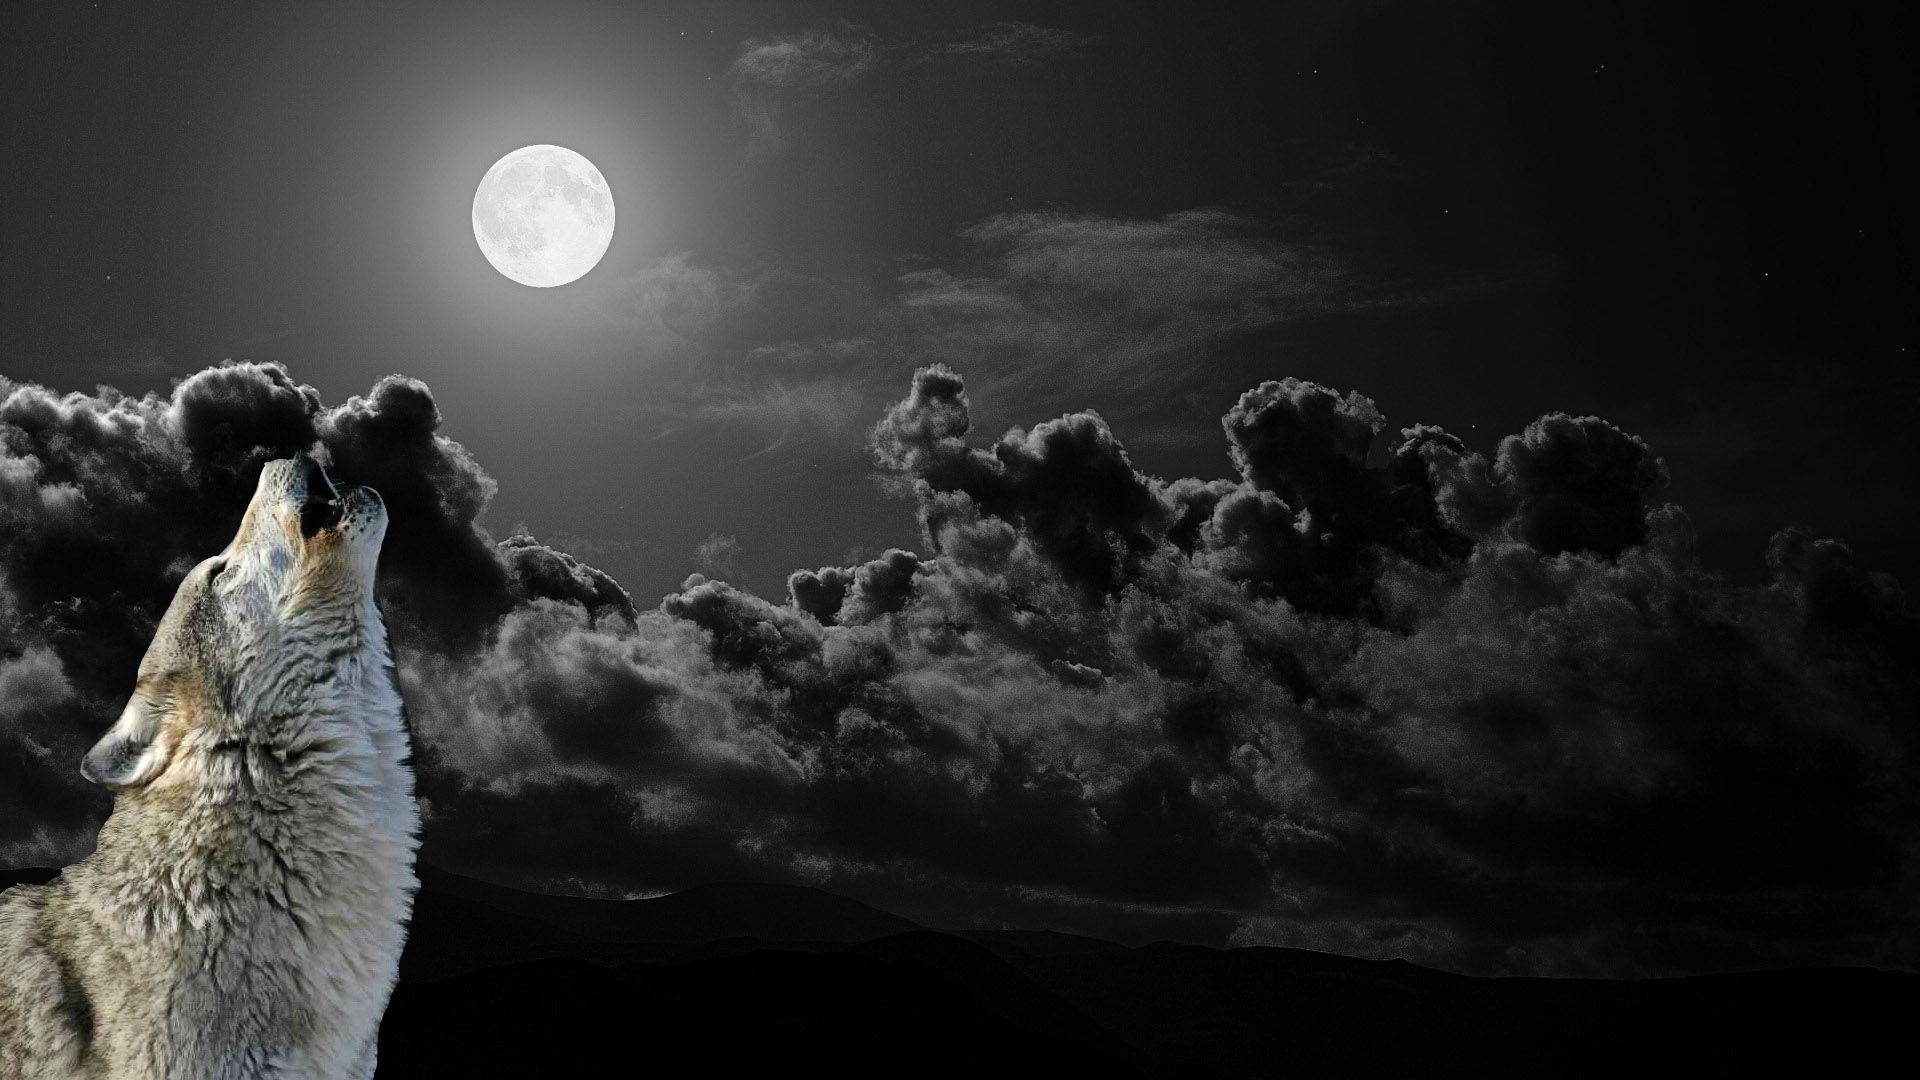 wolf fantasy pics | fantasy wolf fullmoon user wallpaper with